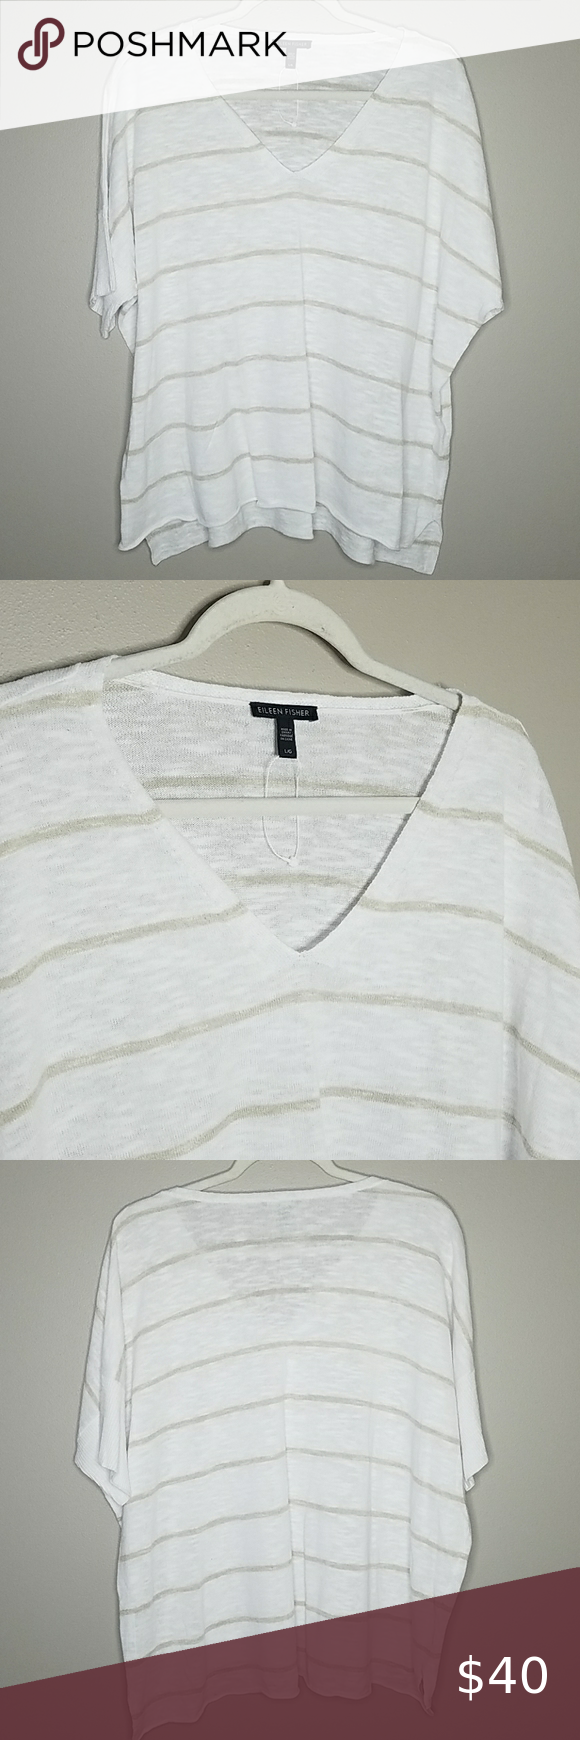 NWOT Eileen Fisher Linen Top, Large NWOT Eileen Fisher Linen Top in White and Tan Stripes, Dolman Sleeves, Size Large.  56% Organic Linen, 44% Organic Cotton. Measures approximately 25